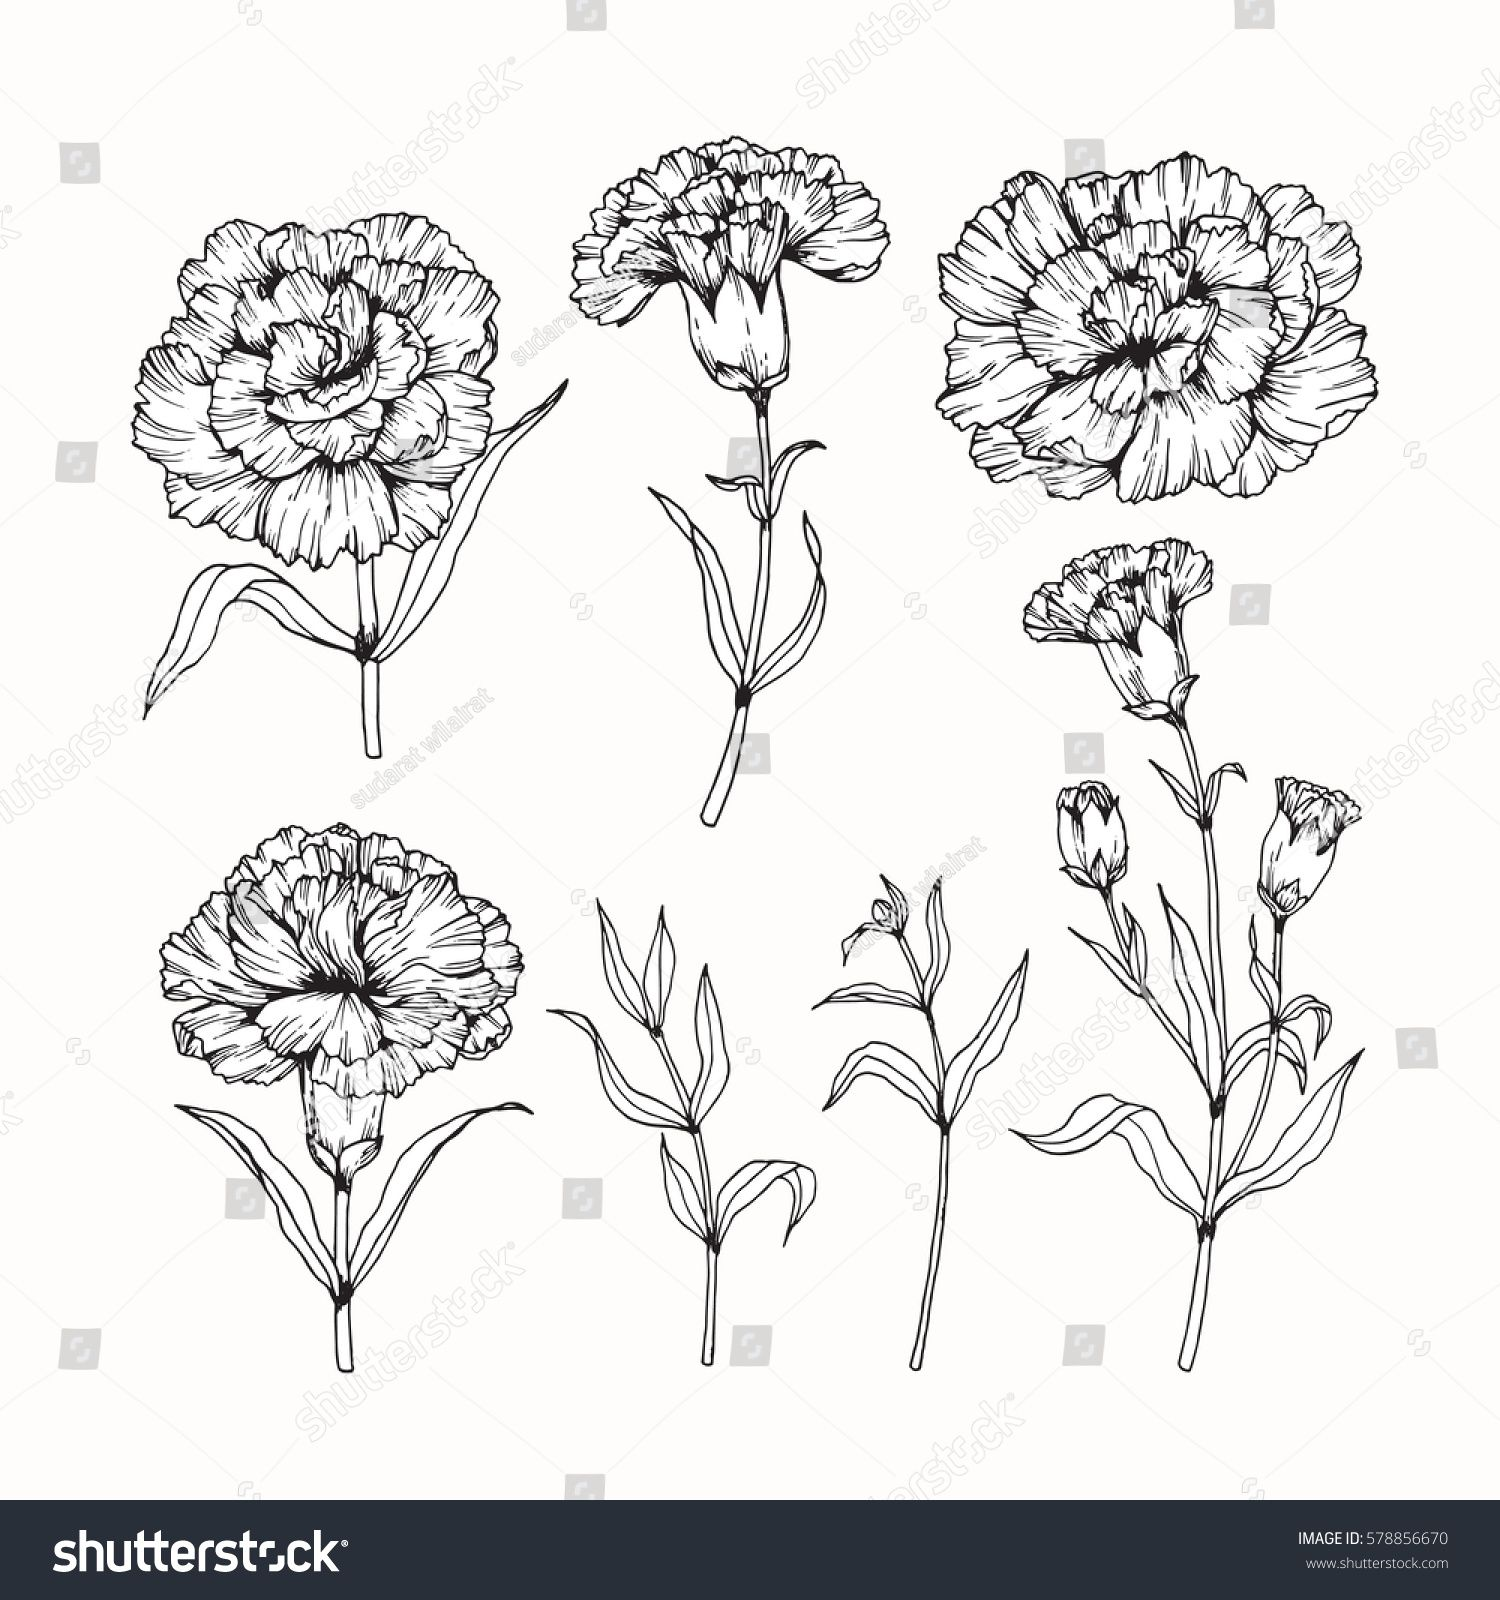 Vector Collection Set Of Carnation Flower By Hand Drawing On White Backgrounds Carnation Flower Tattoo Carnation Tattoo Flower Tattoo Sleeve